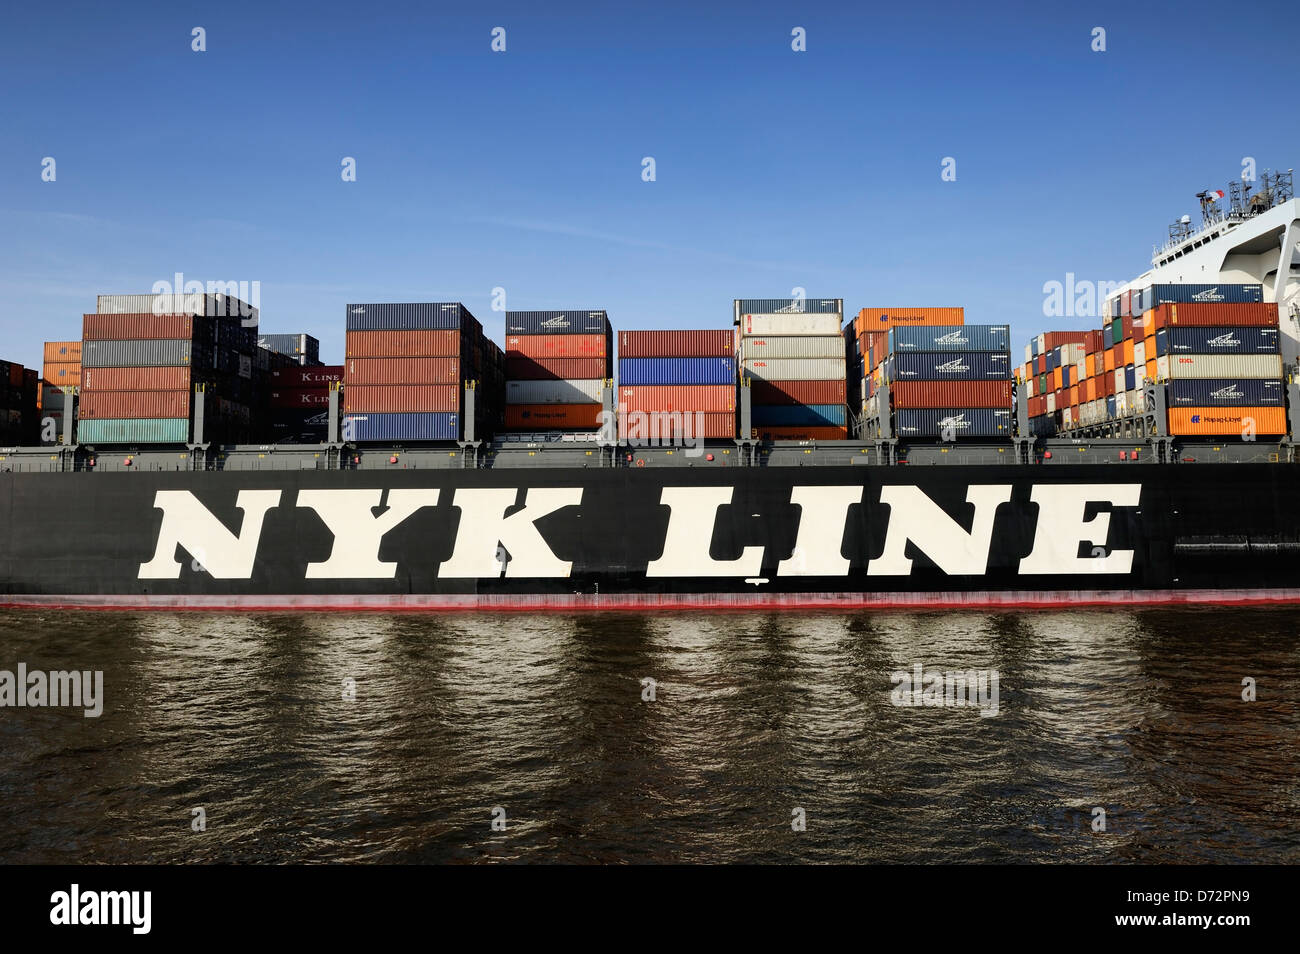 Container freighter NYK Arcadia on the Elbe by height Othmarschen, Hamburg, Germany, Europe - Stock Image